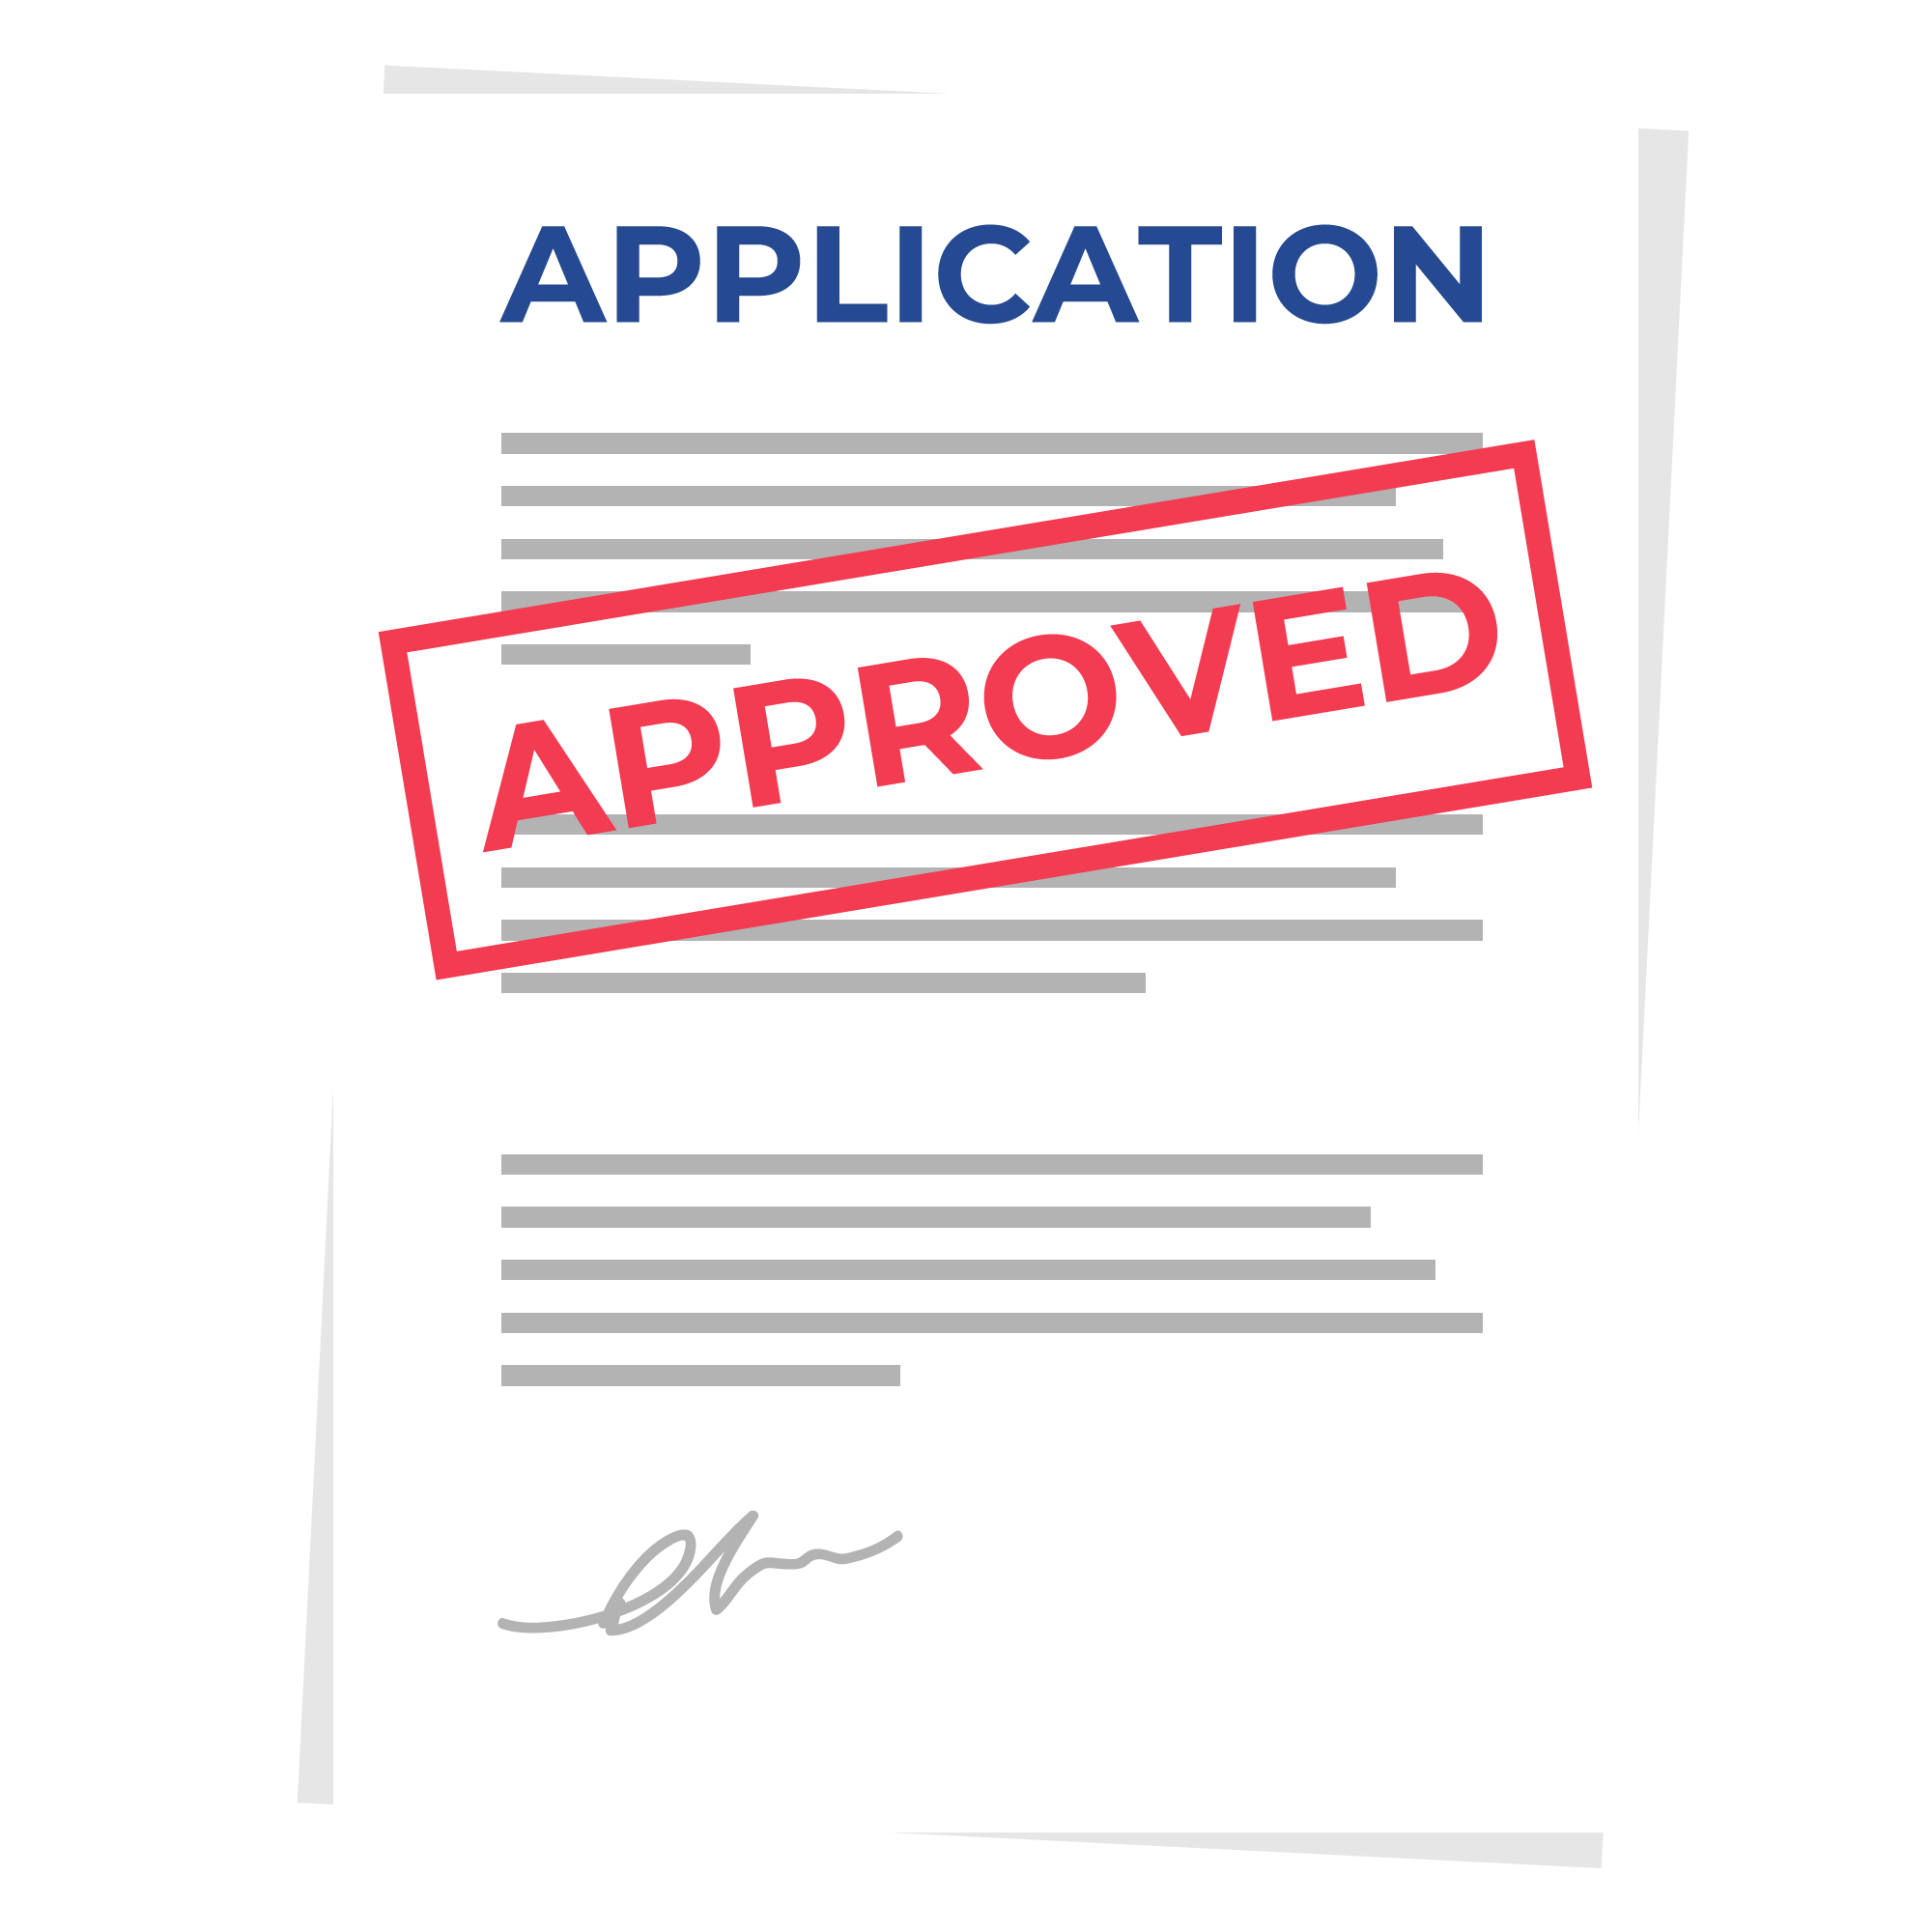 A vector image of an Application being approved